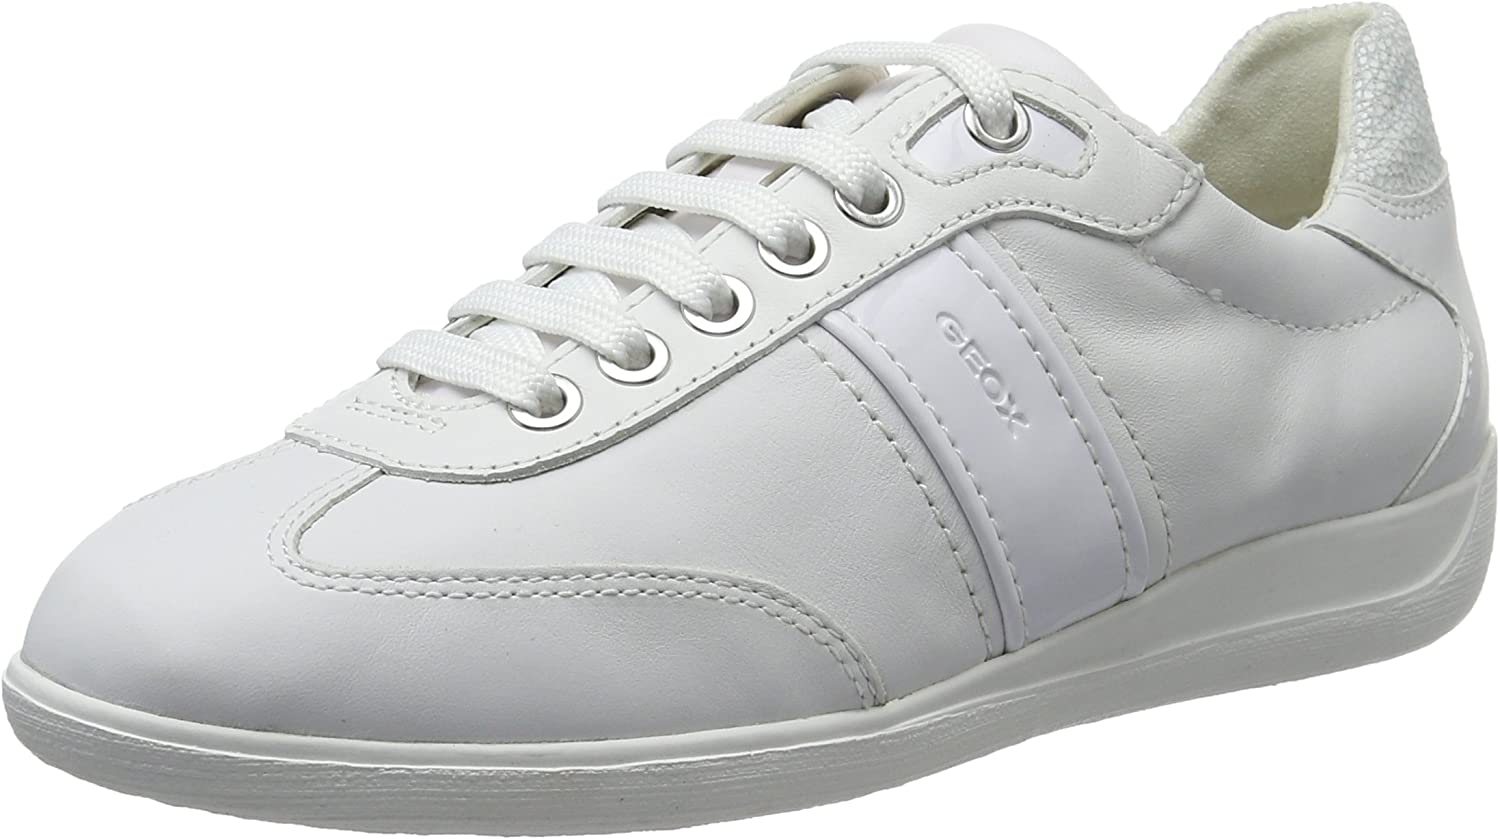 Geox D Myria A Womens Leather Sneakers shoes